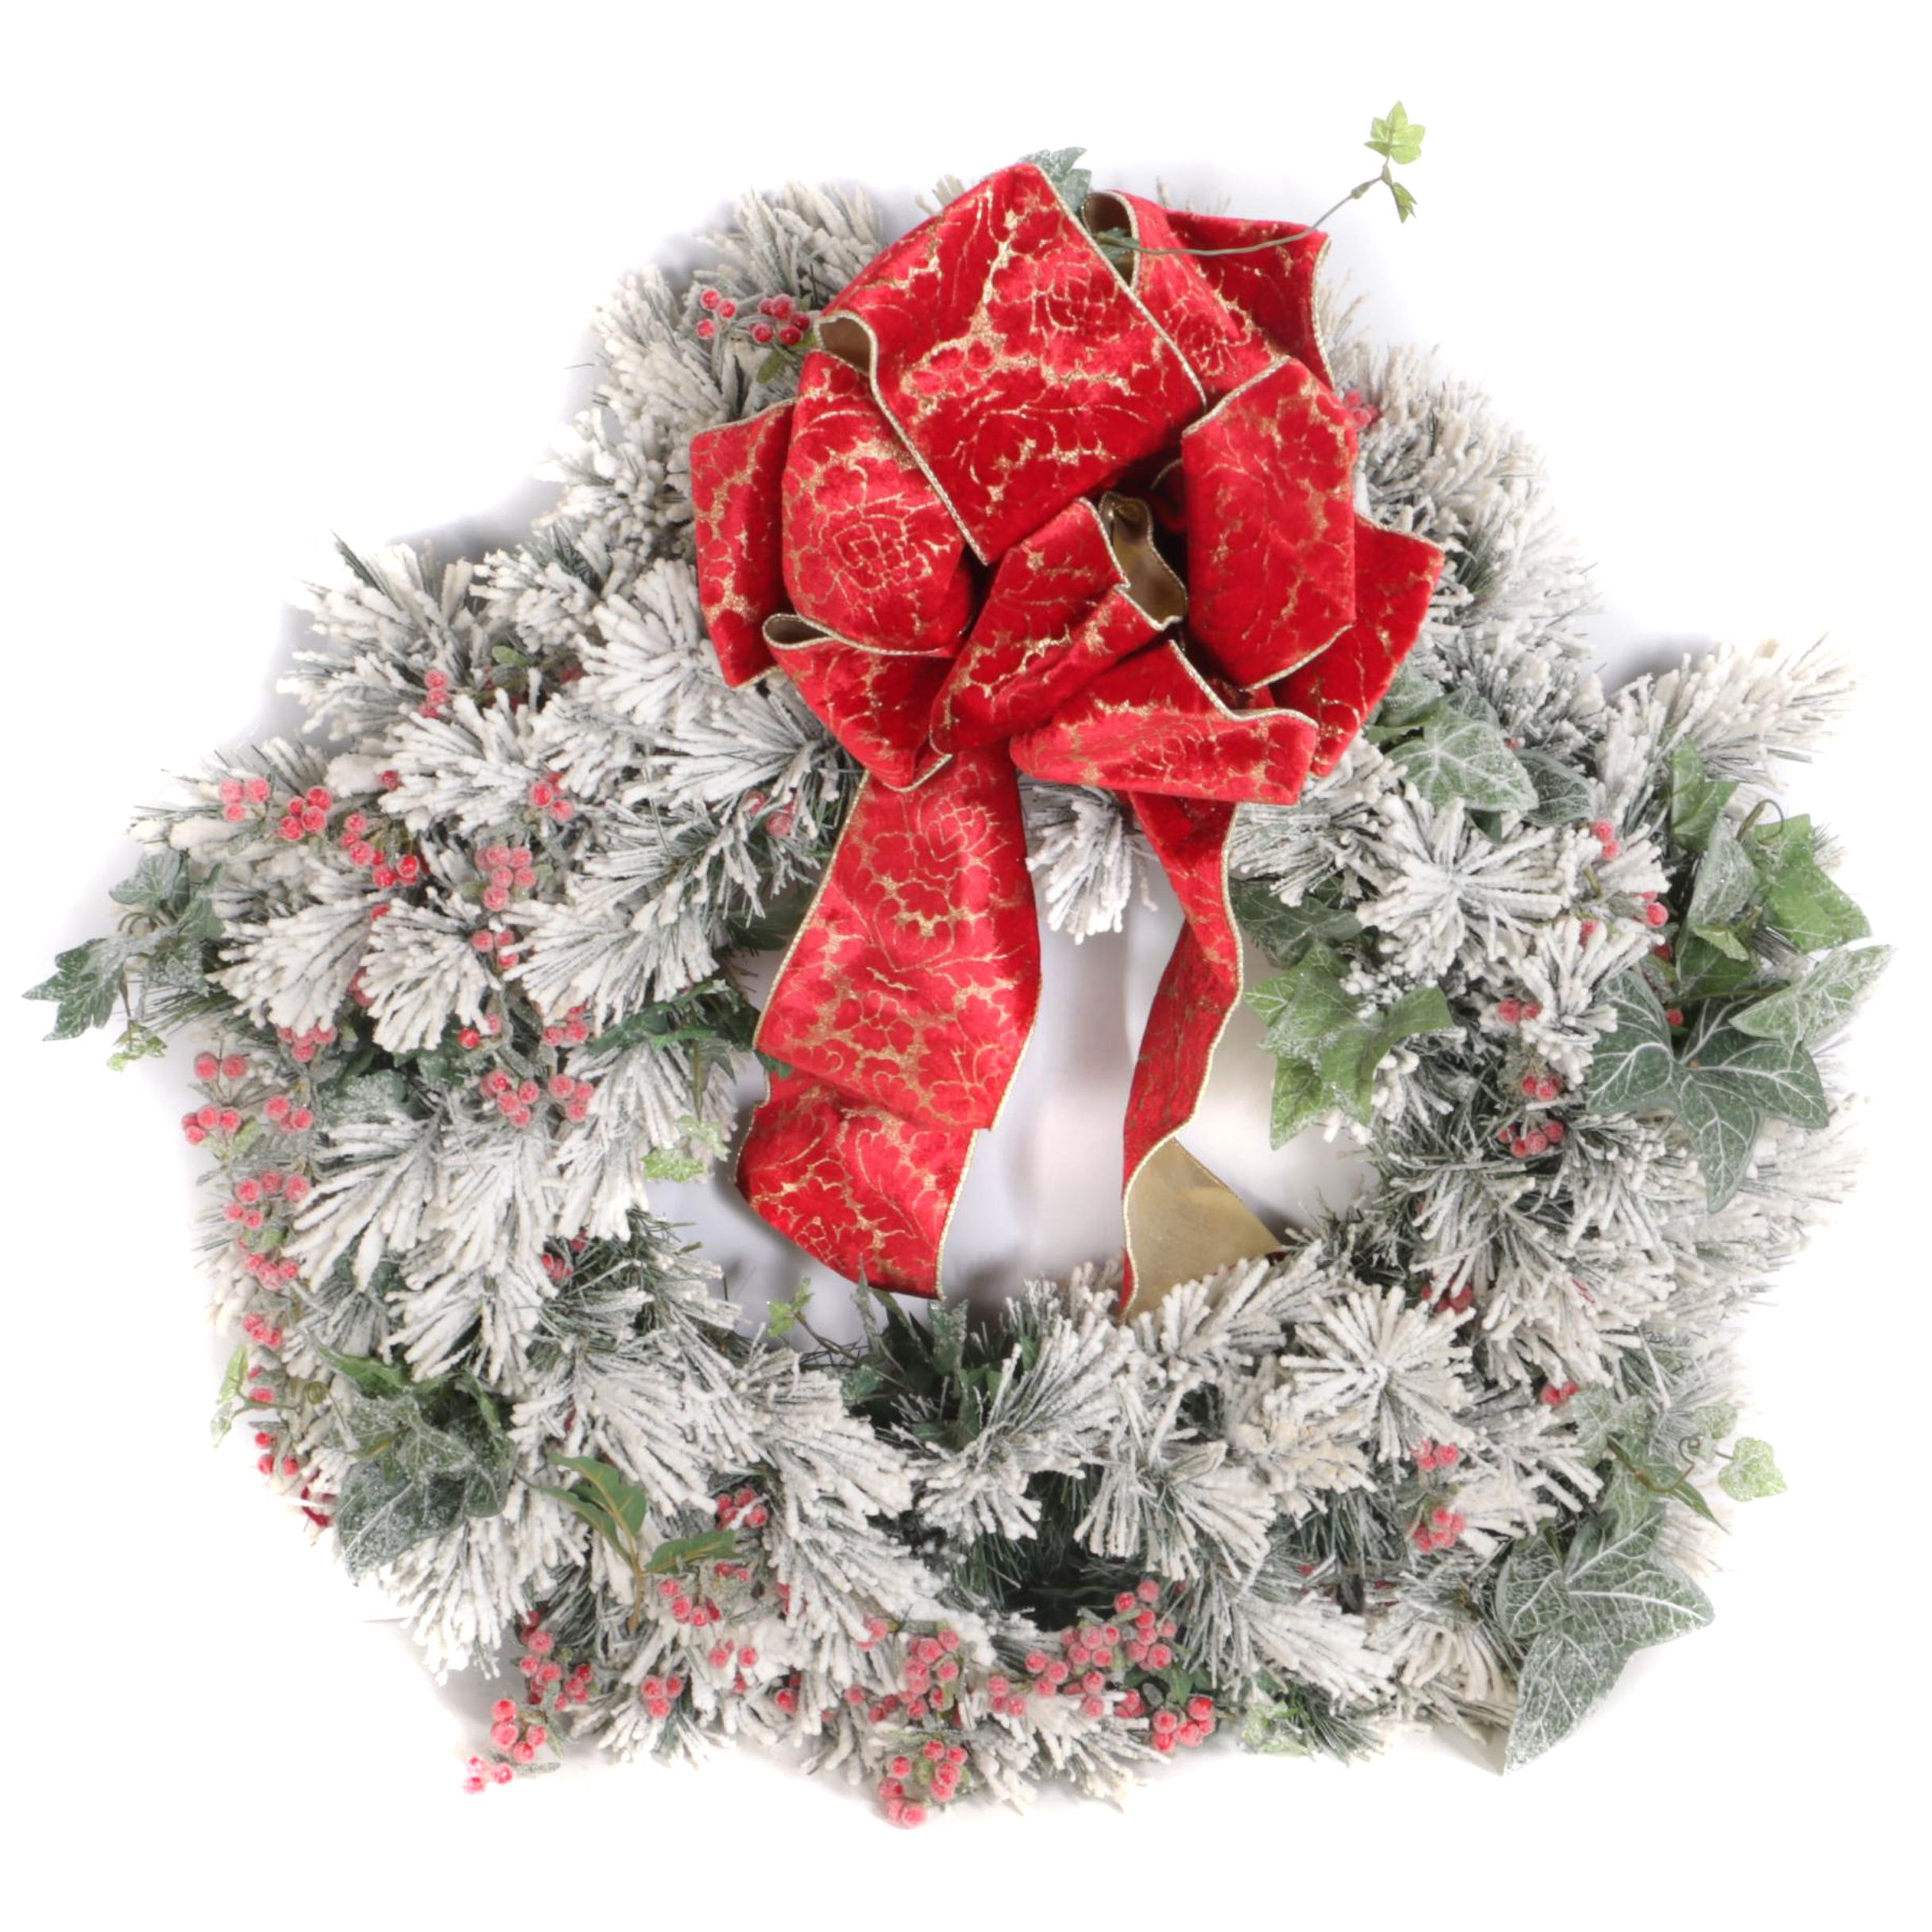 Snow Motif Christmas Wreath with Red Berry Accents and Red Bow Detail